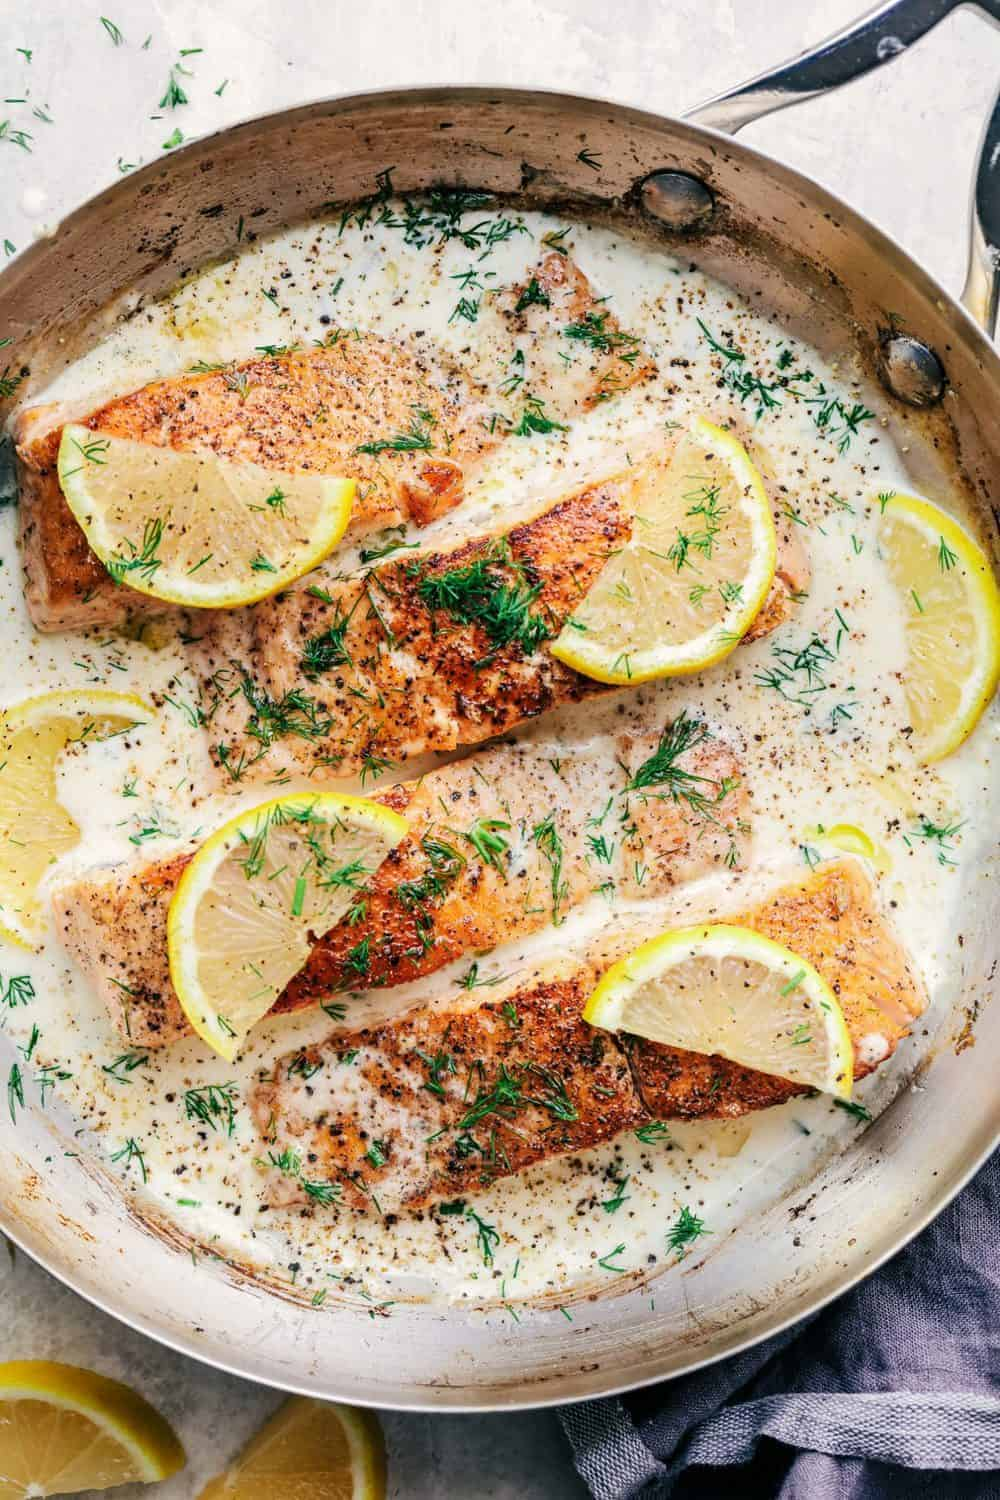 Baked Salmon with Creamy Dill Sauce - Keto fish meals